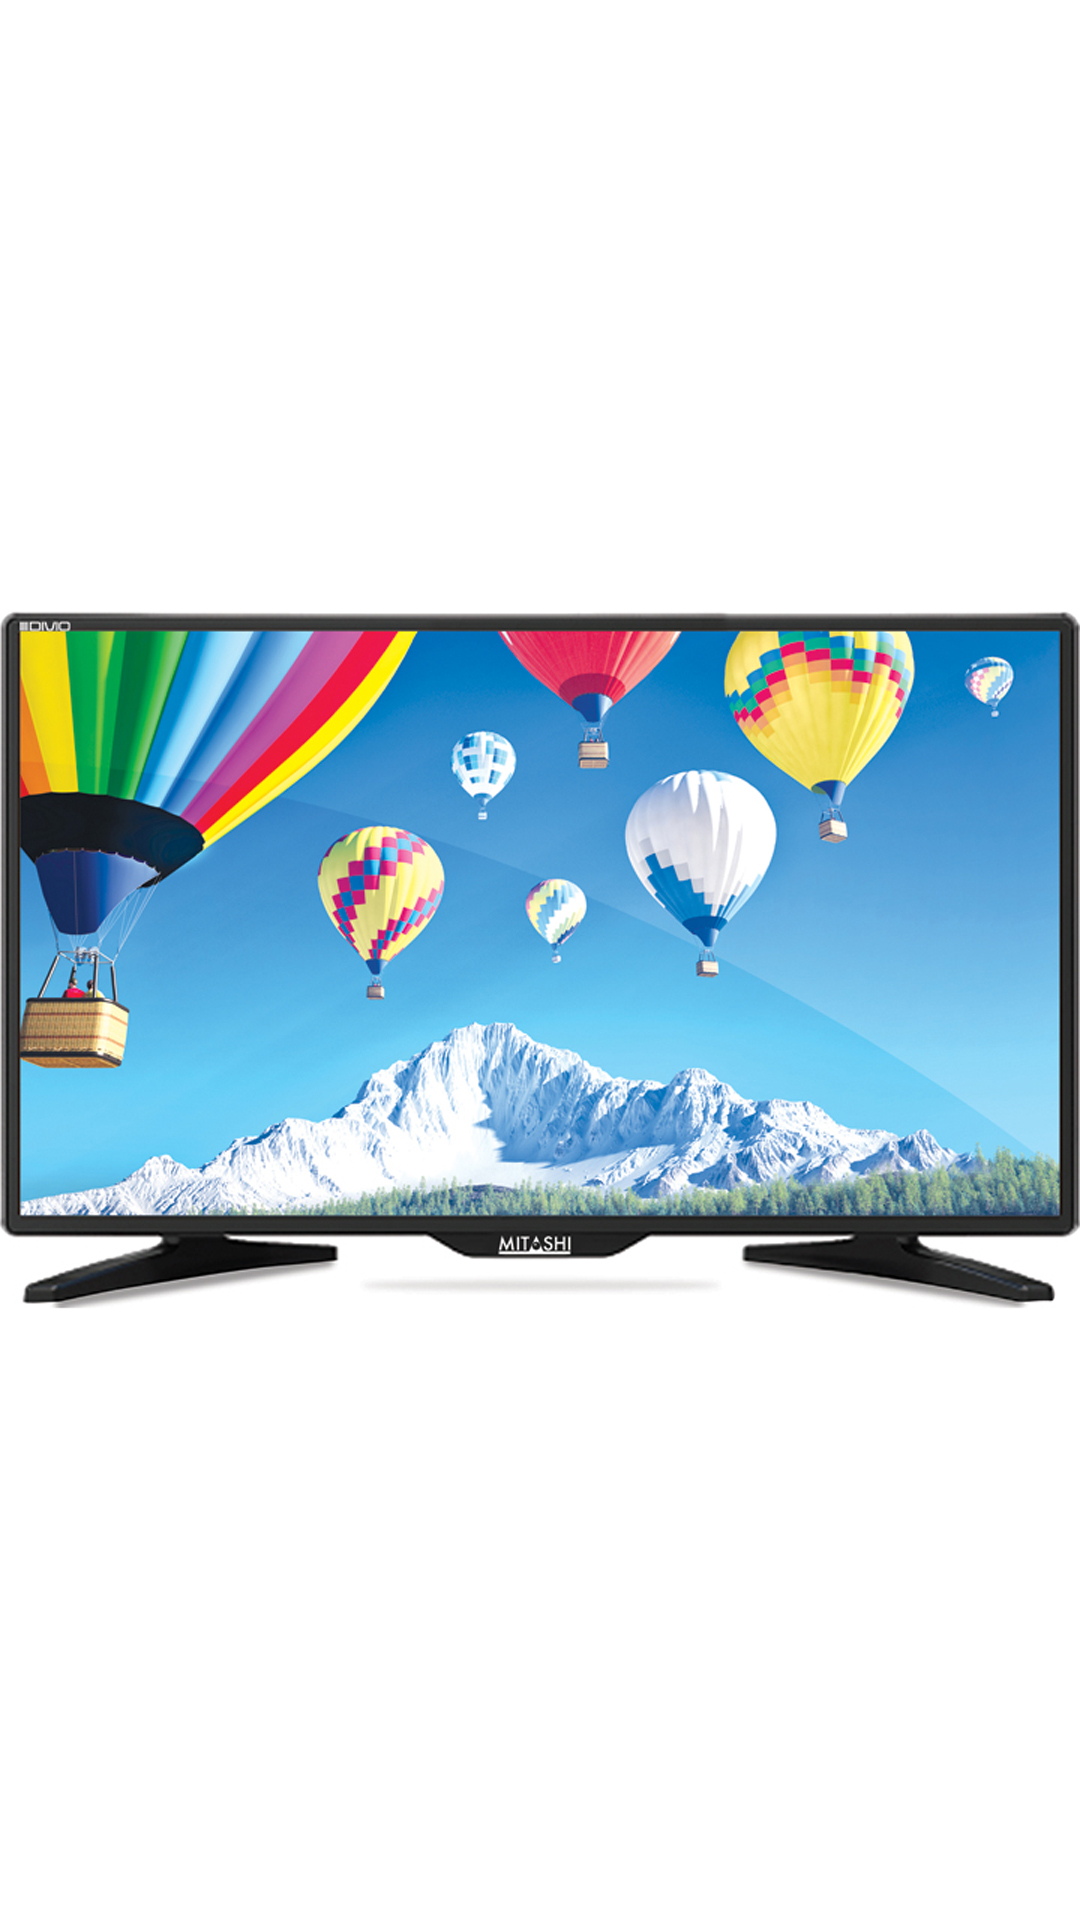 Mitashi MiE022v10 54.61 cm (21.5) LED TV (Full HD)